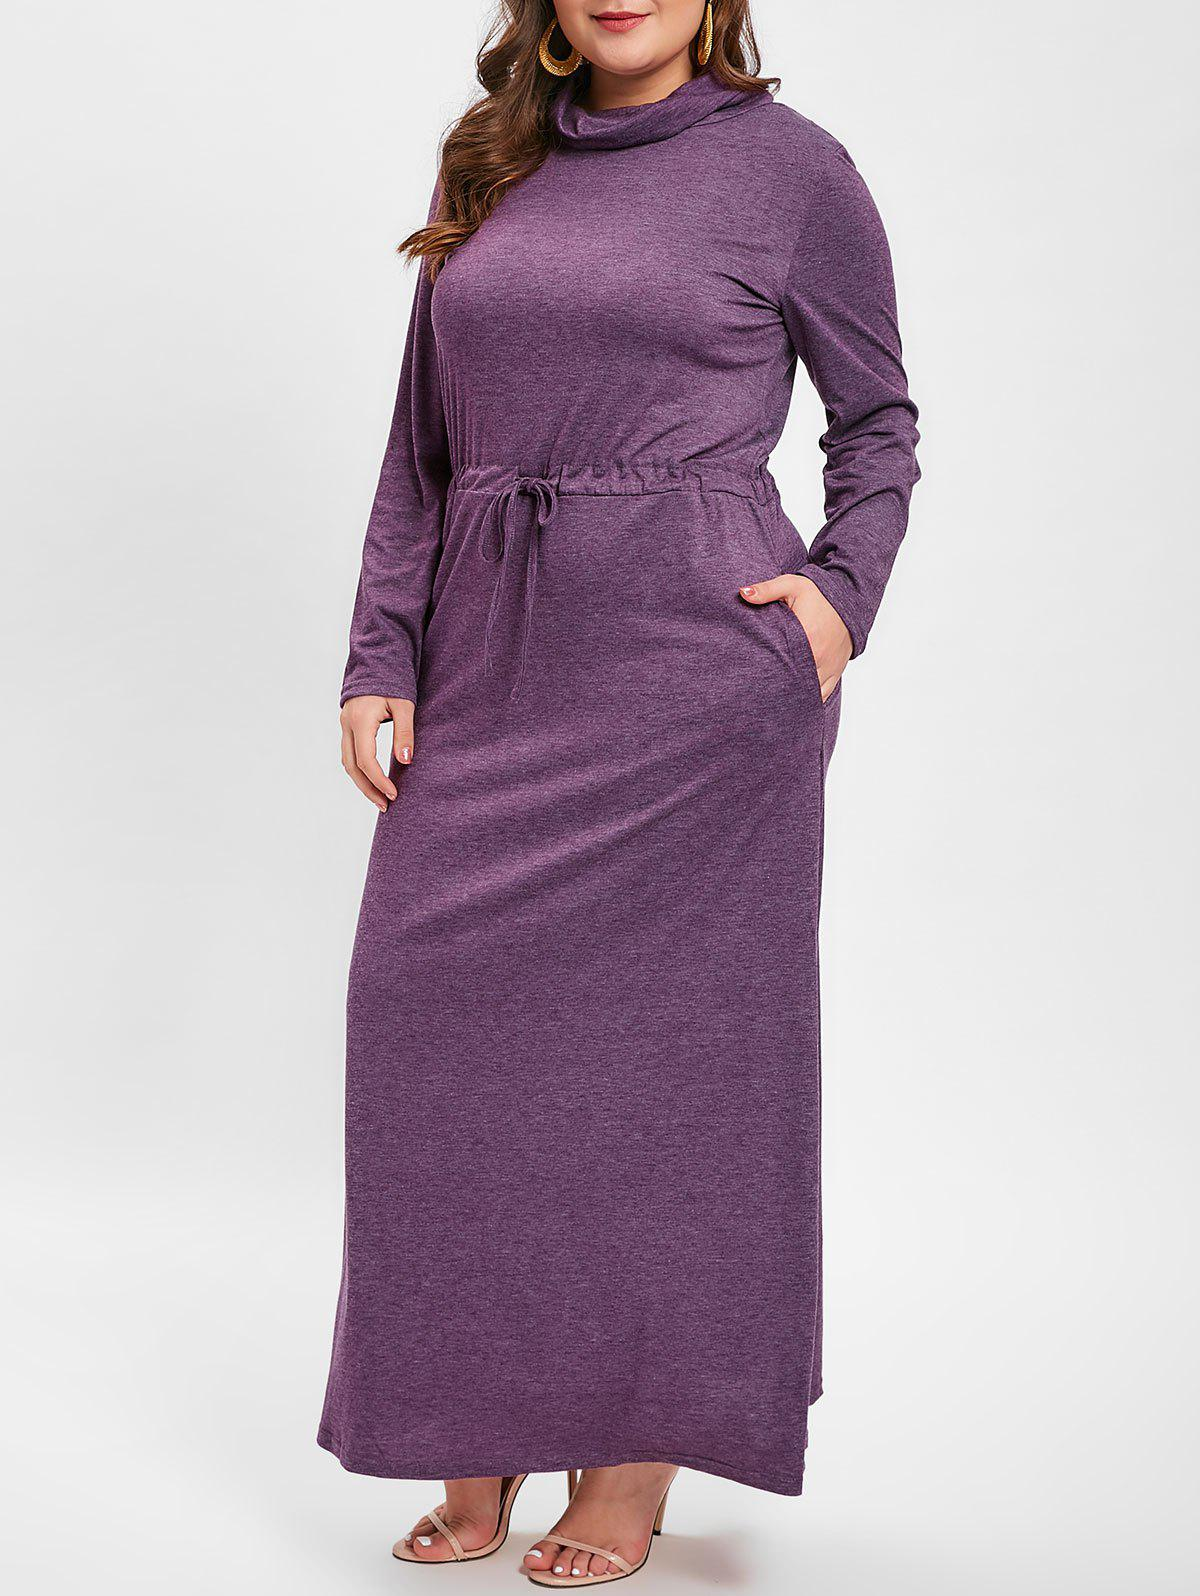 New Cowl Neck Plus Size Drawstring Waist Maxi Dress